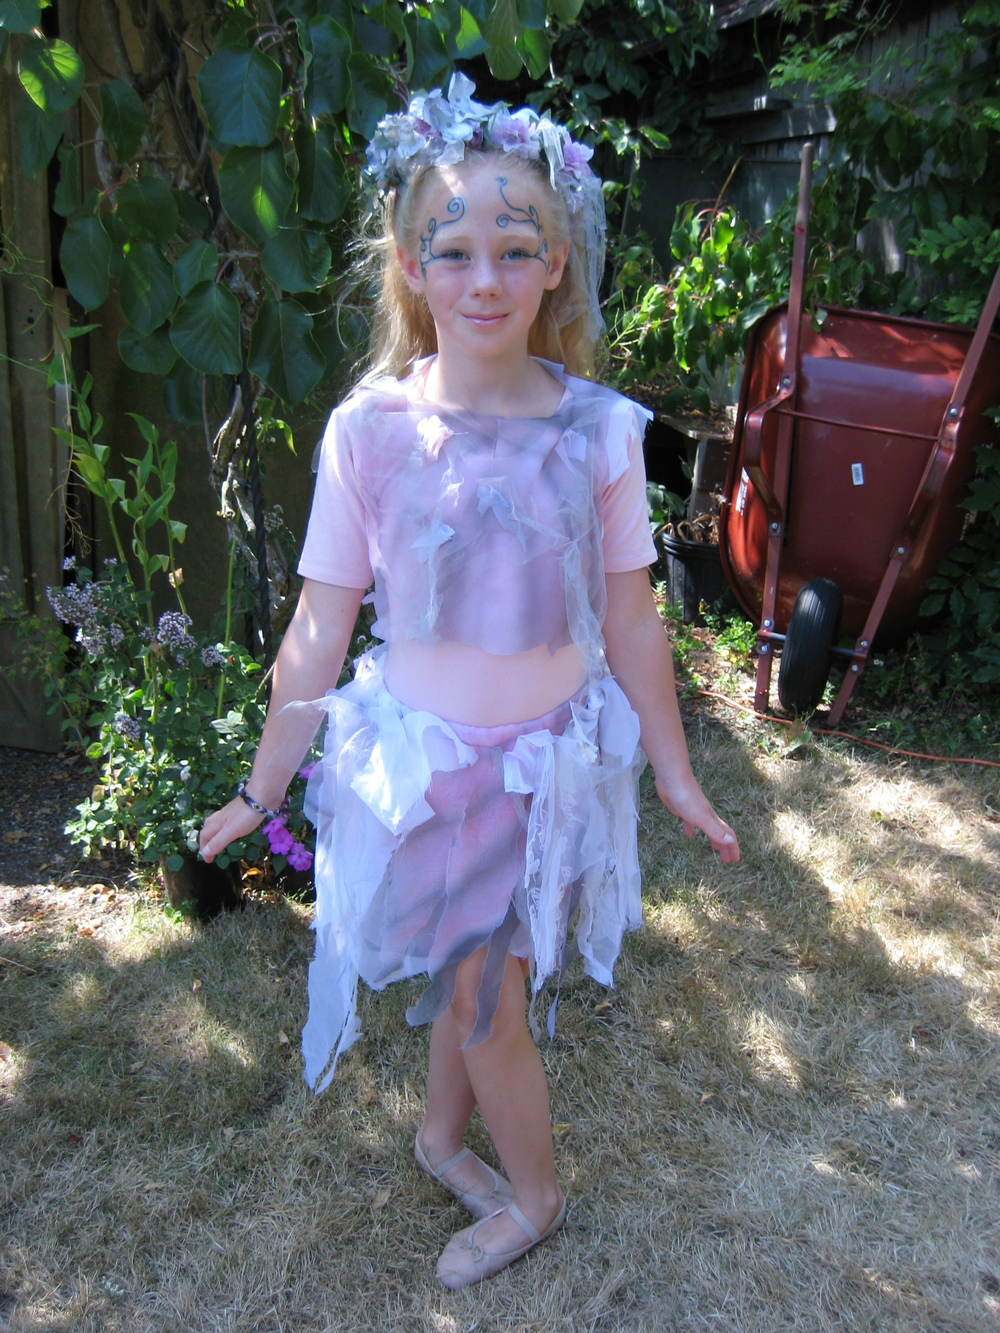 Miranda Cassée as a Fairy in Martha Murphy's backyard